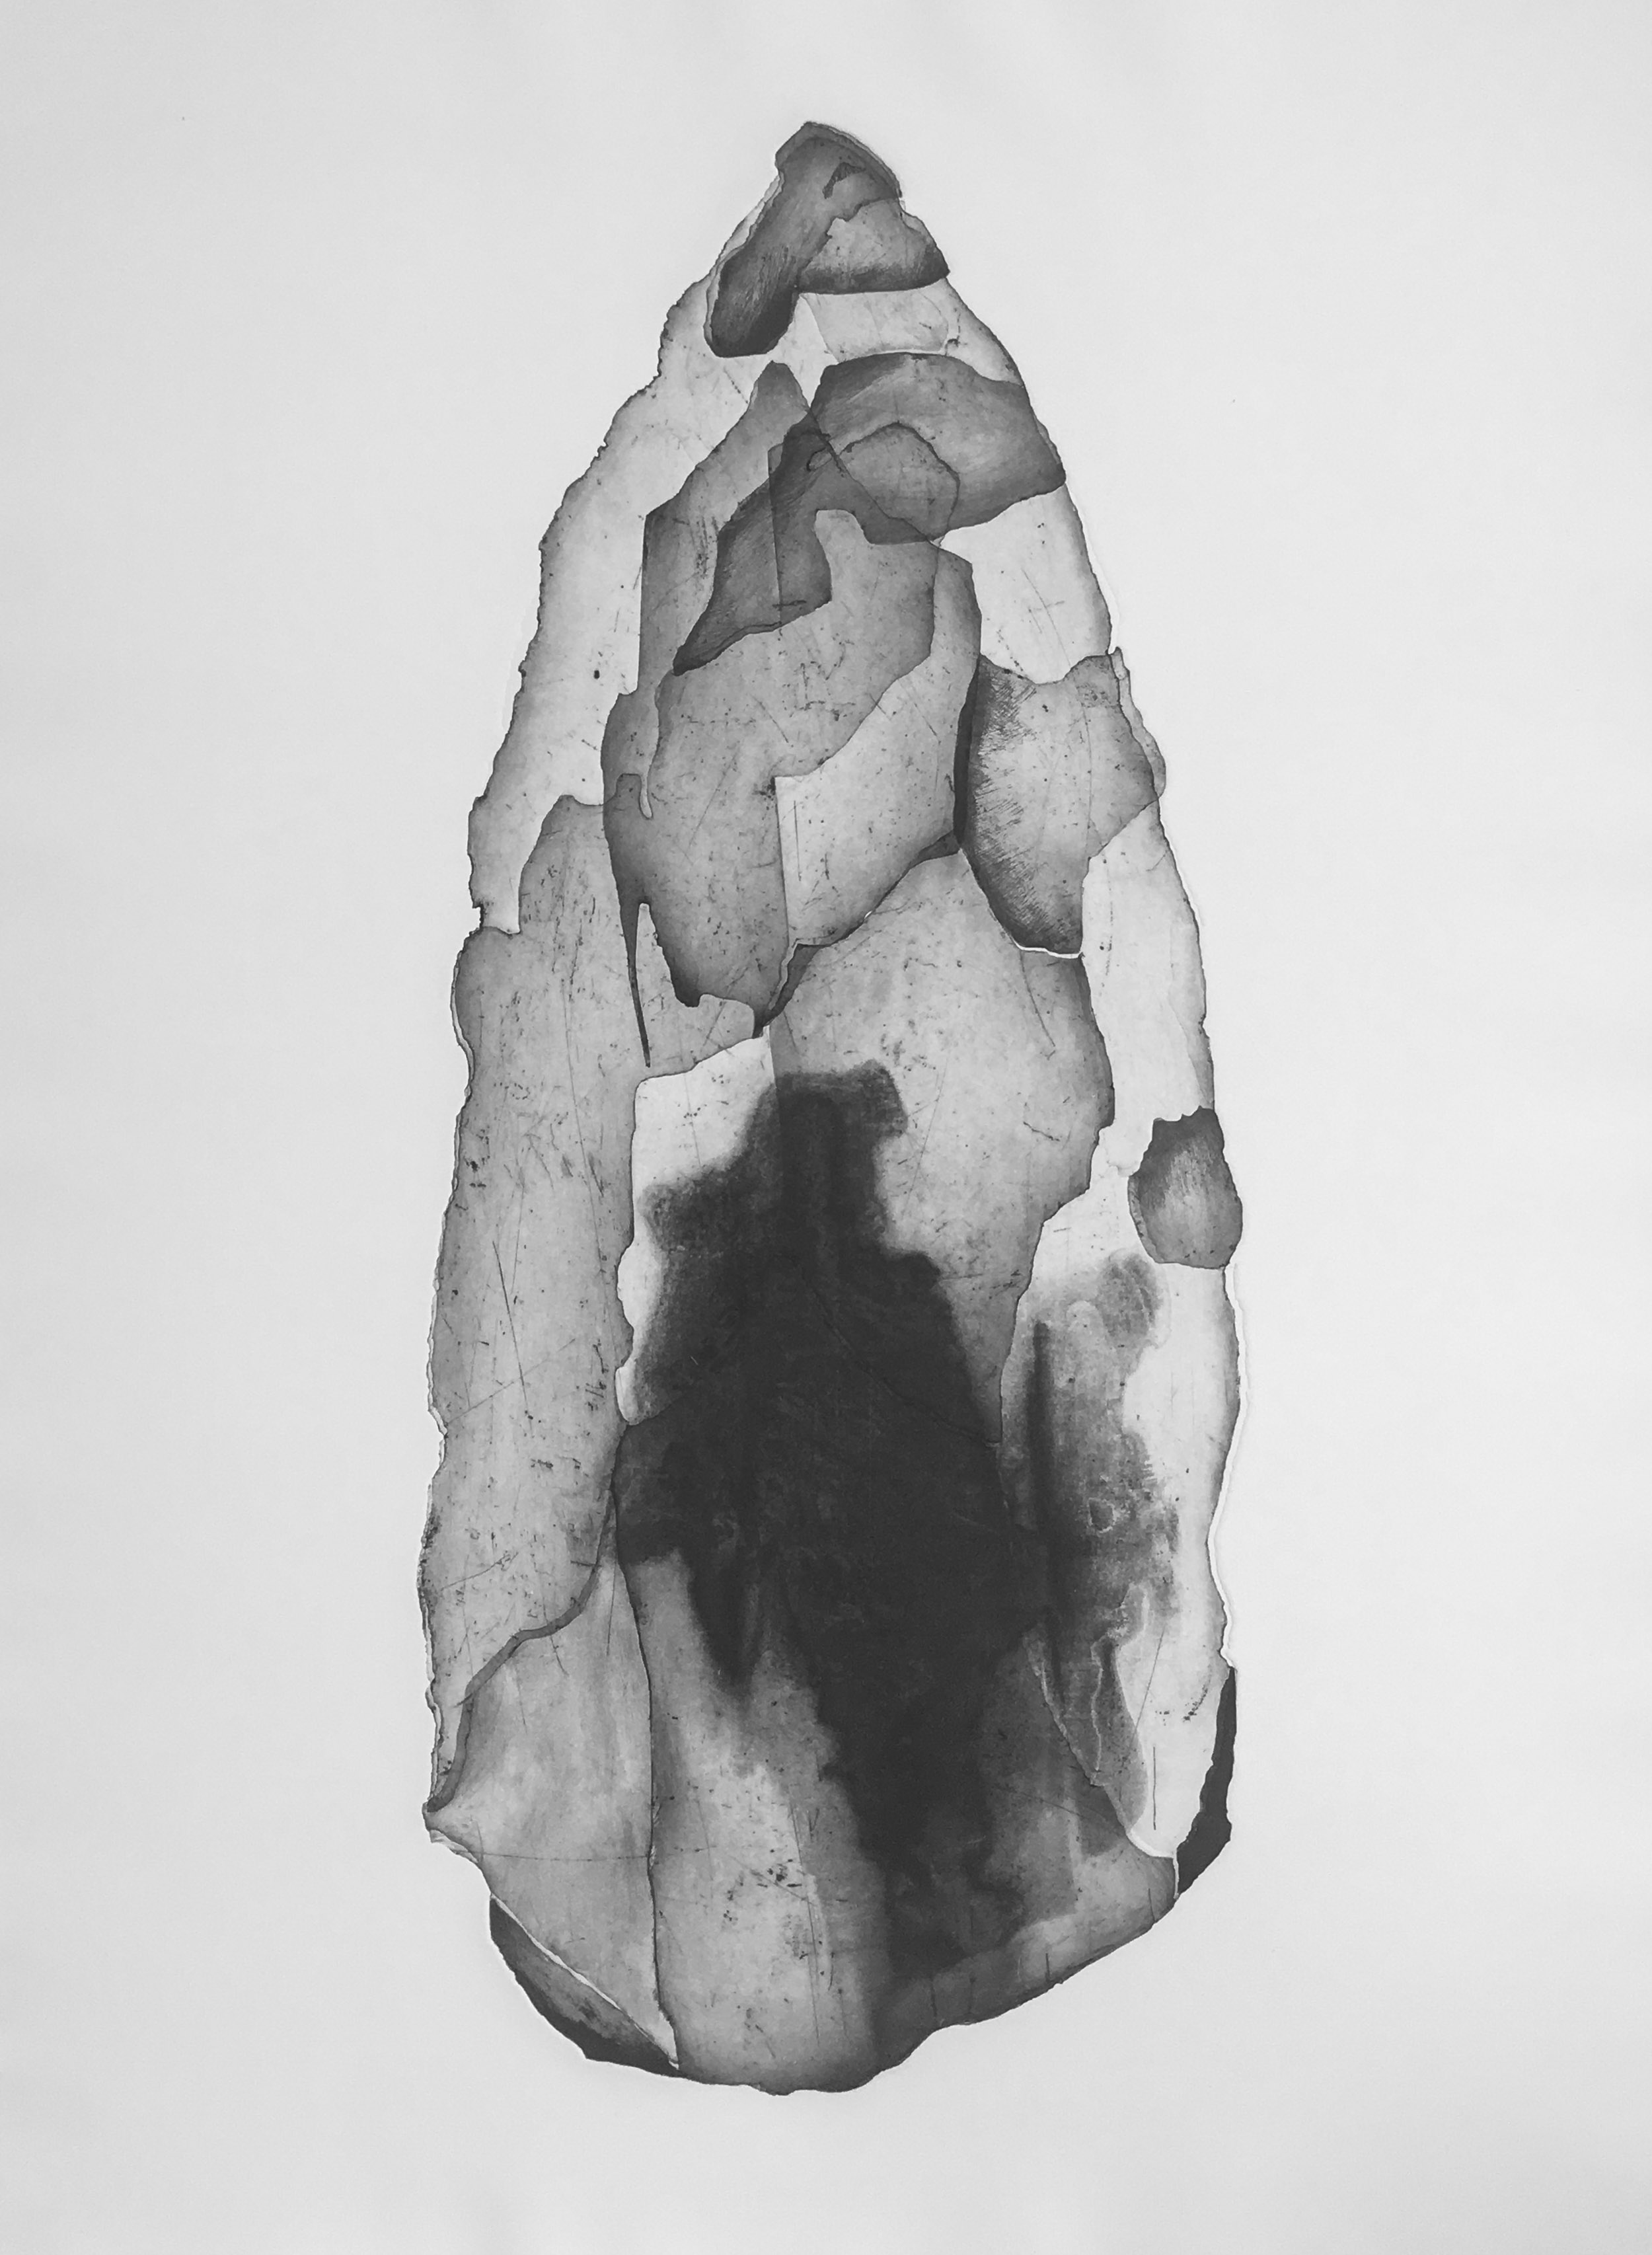 Worrorra Spear Tip, Vic Cox Collection